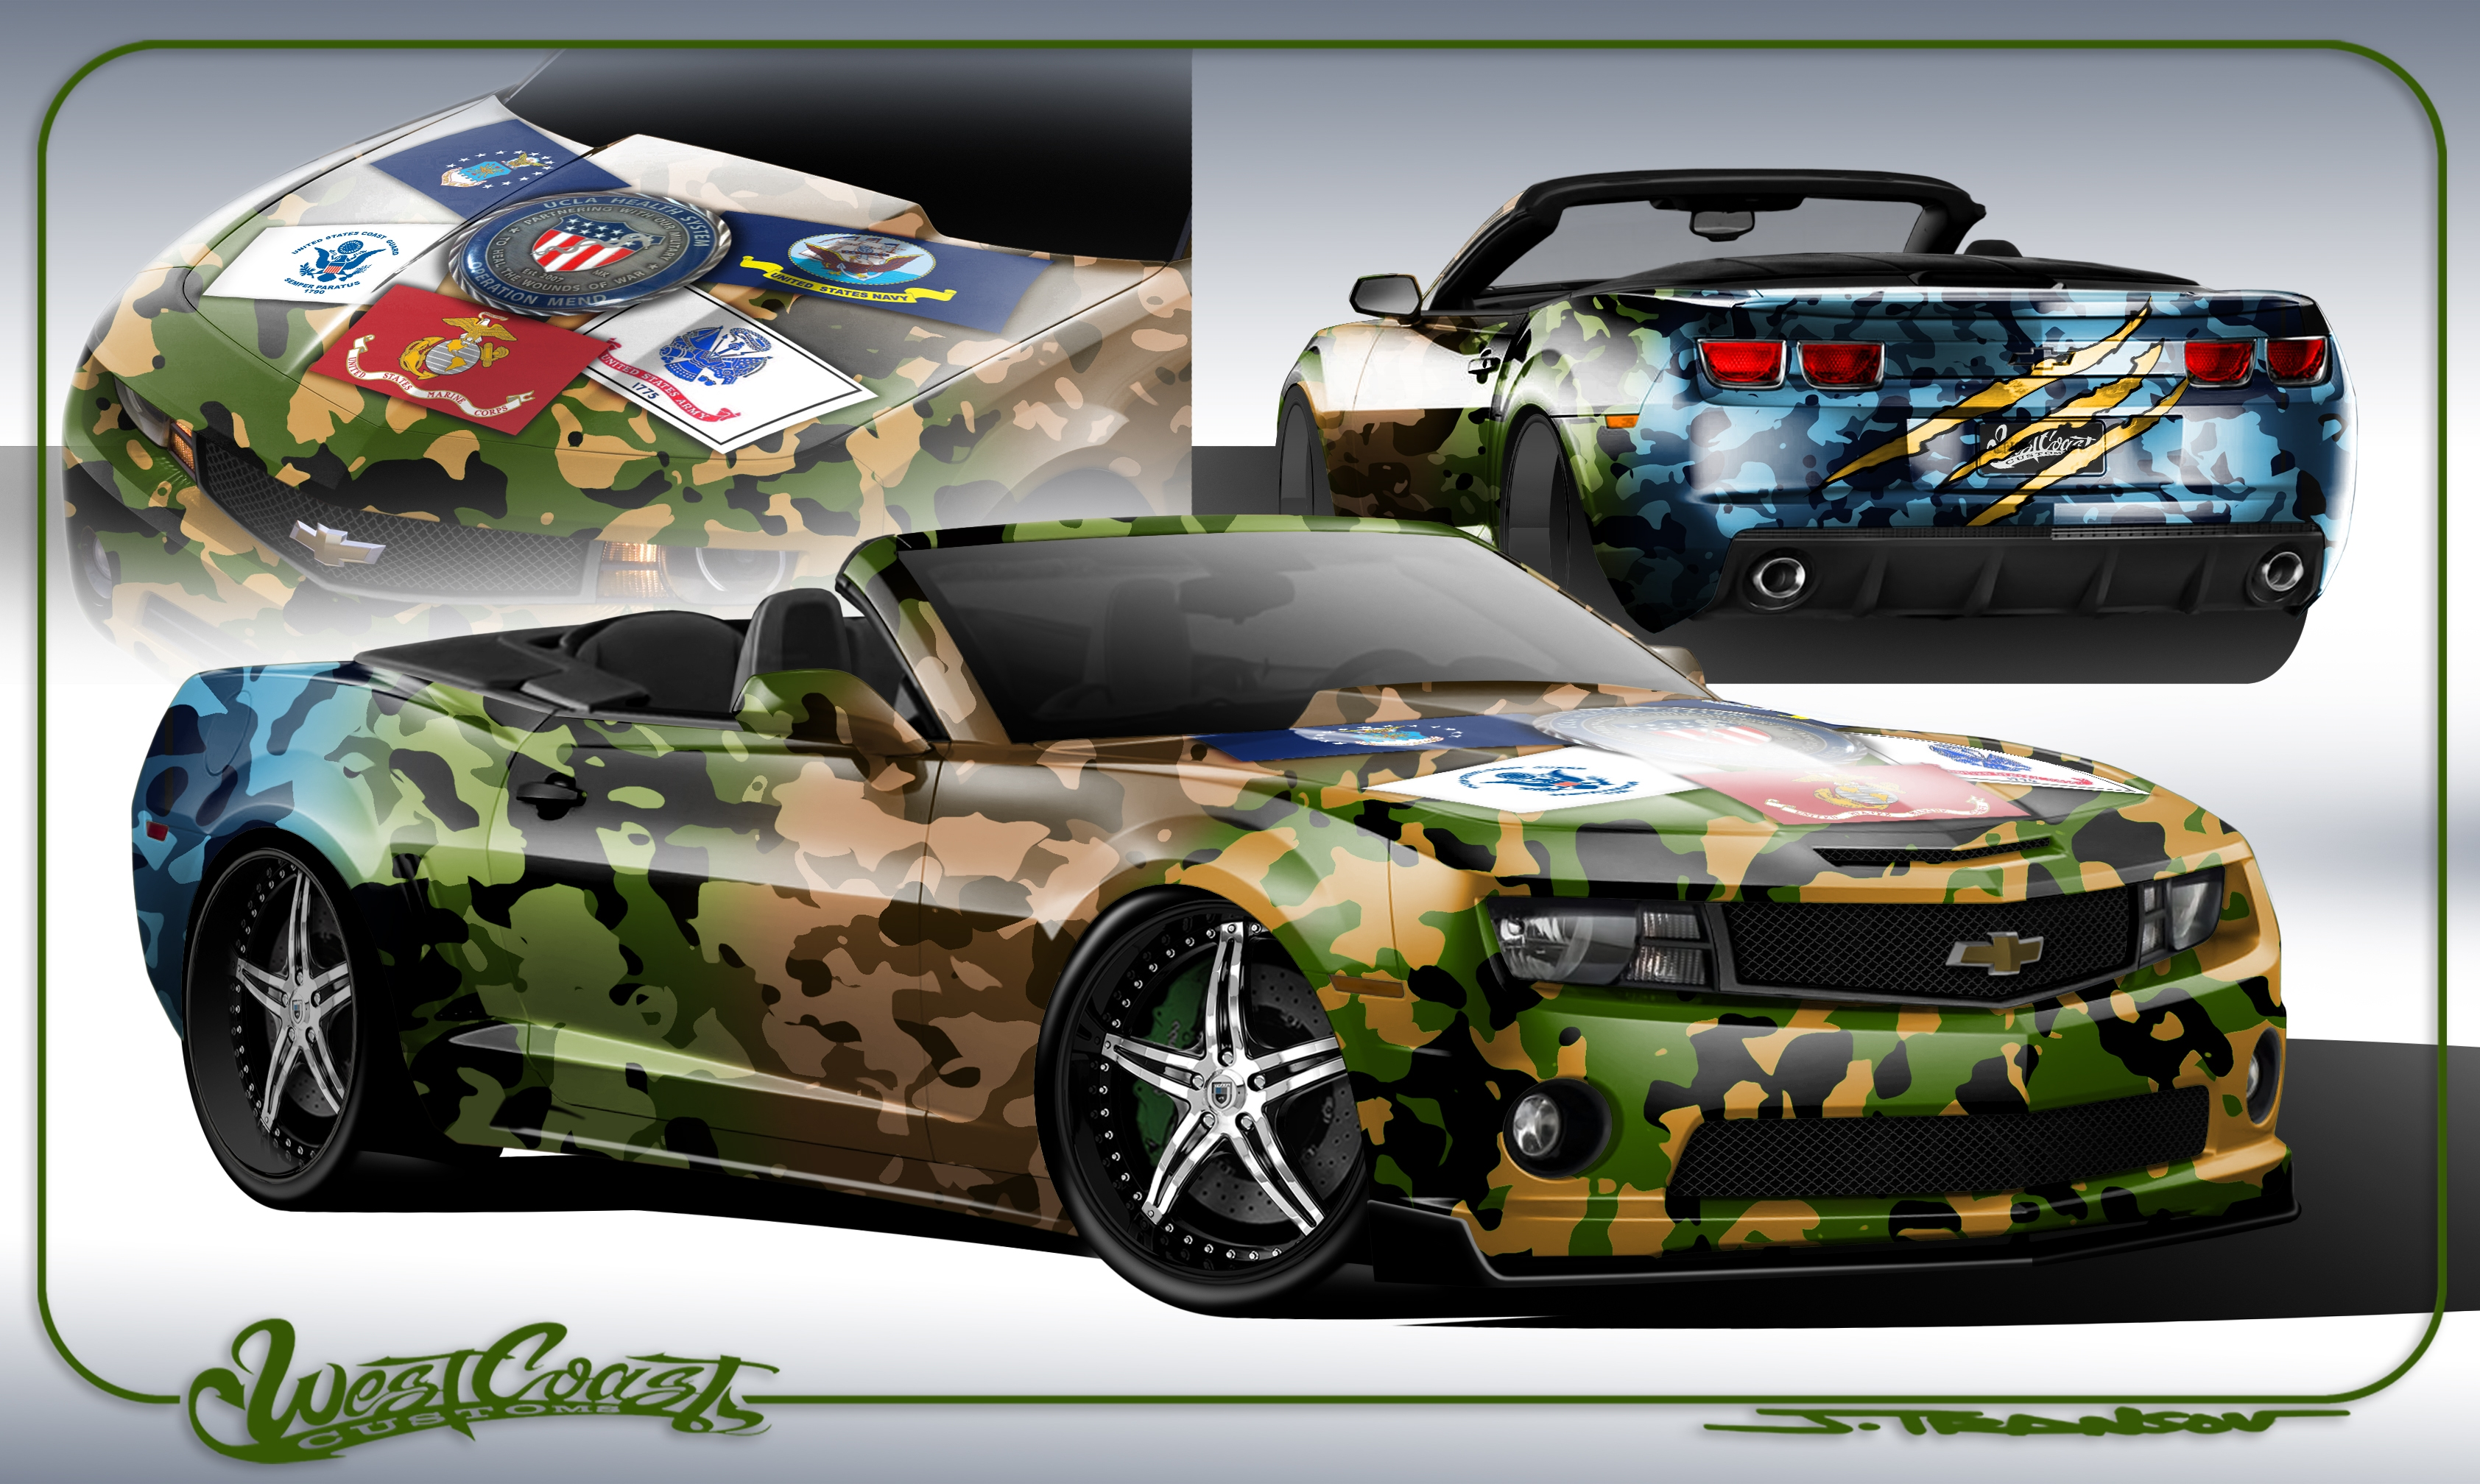 Reality Tv Auto Customizer Auction House Team Up To